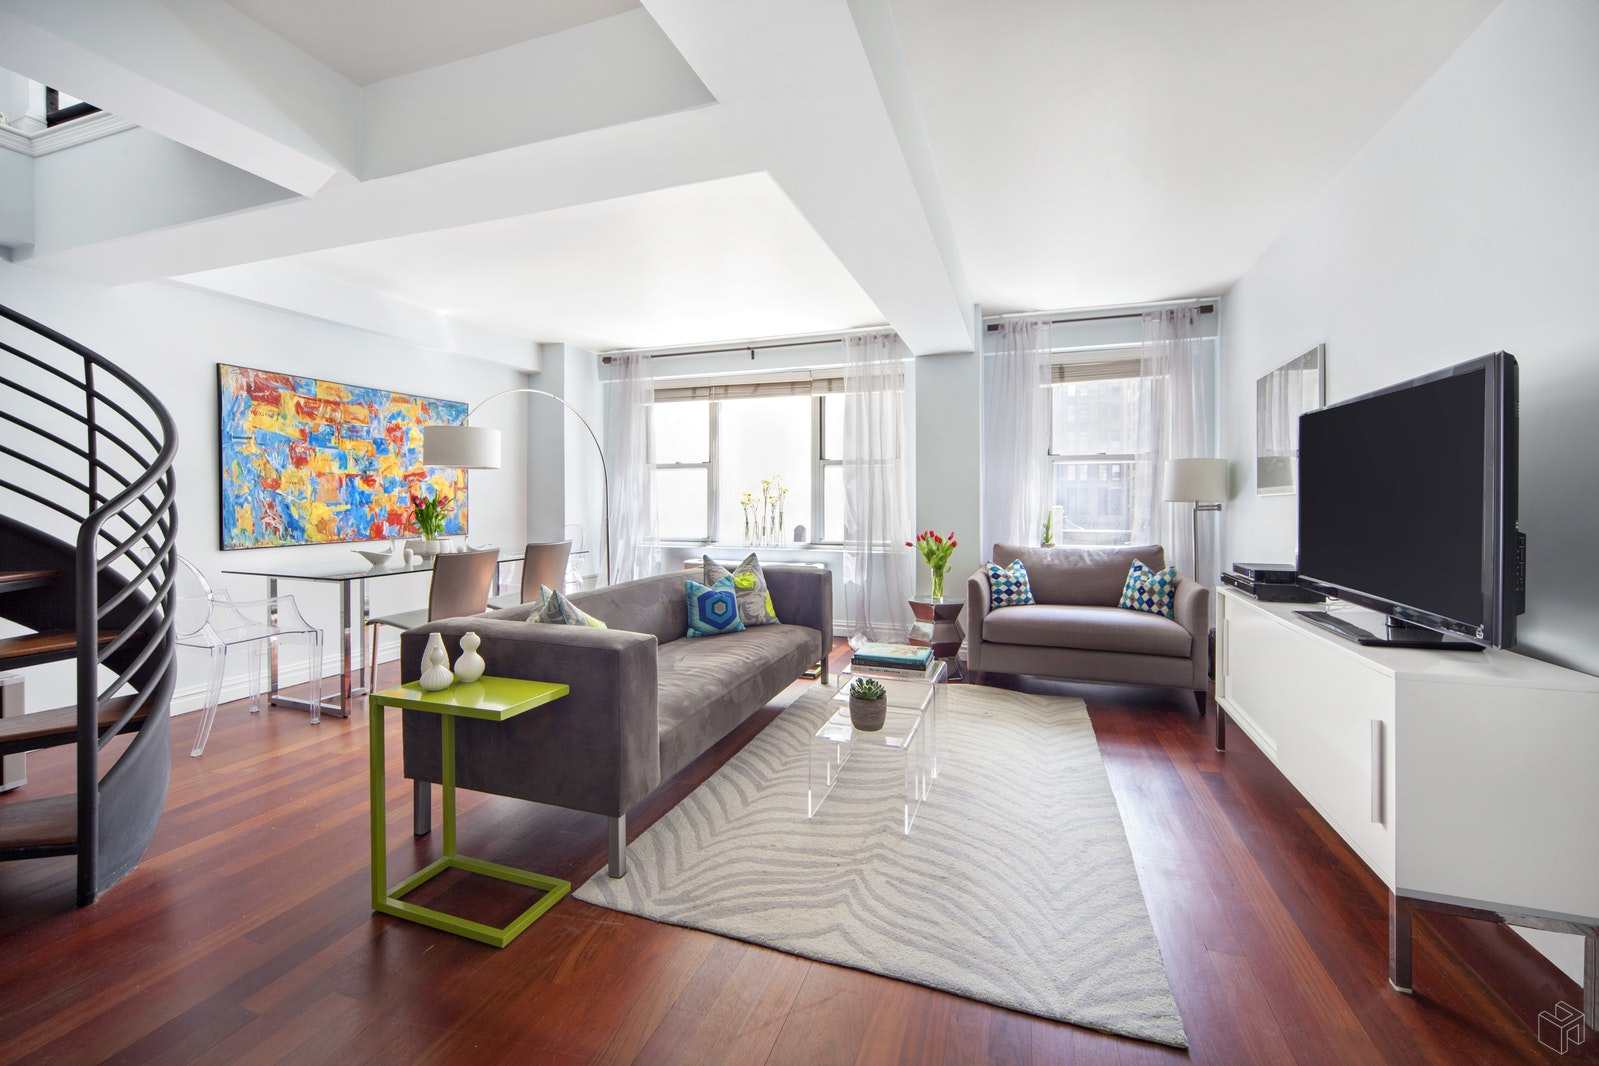 69 Fifth Avenue 4d Union Square Nyc 10003 1 250 000 Property For